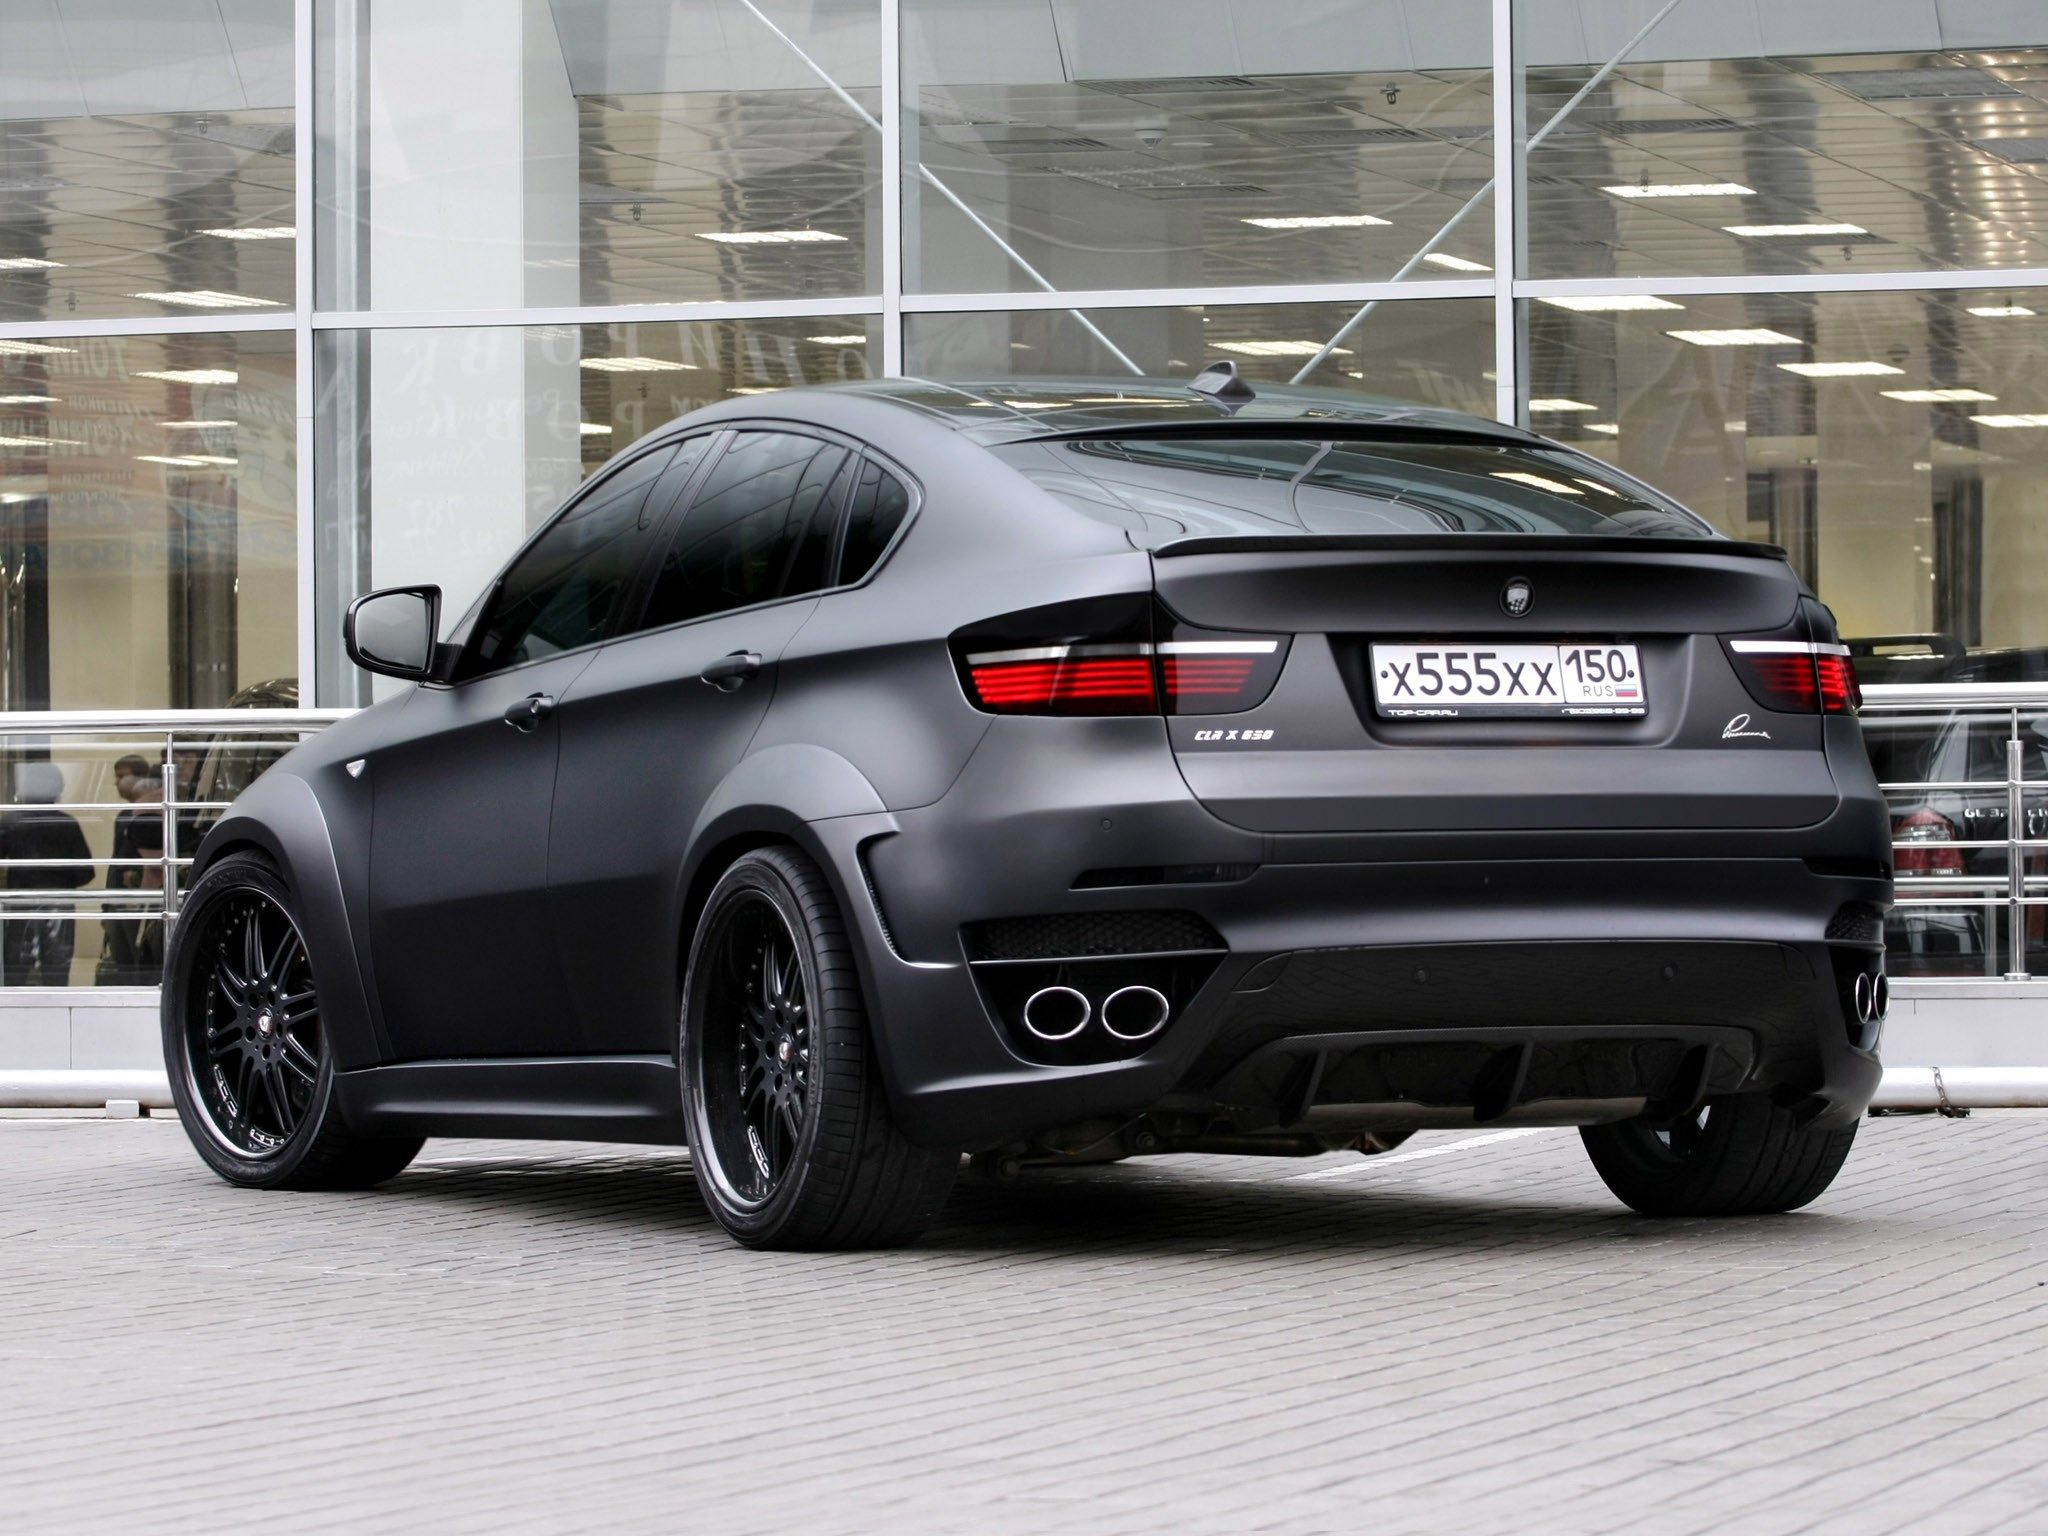 Bmw x6 tuning images and pictures 464 kb thelma walter